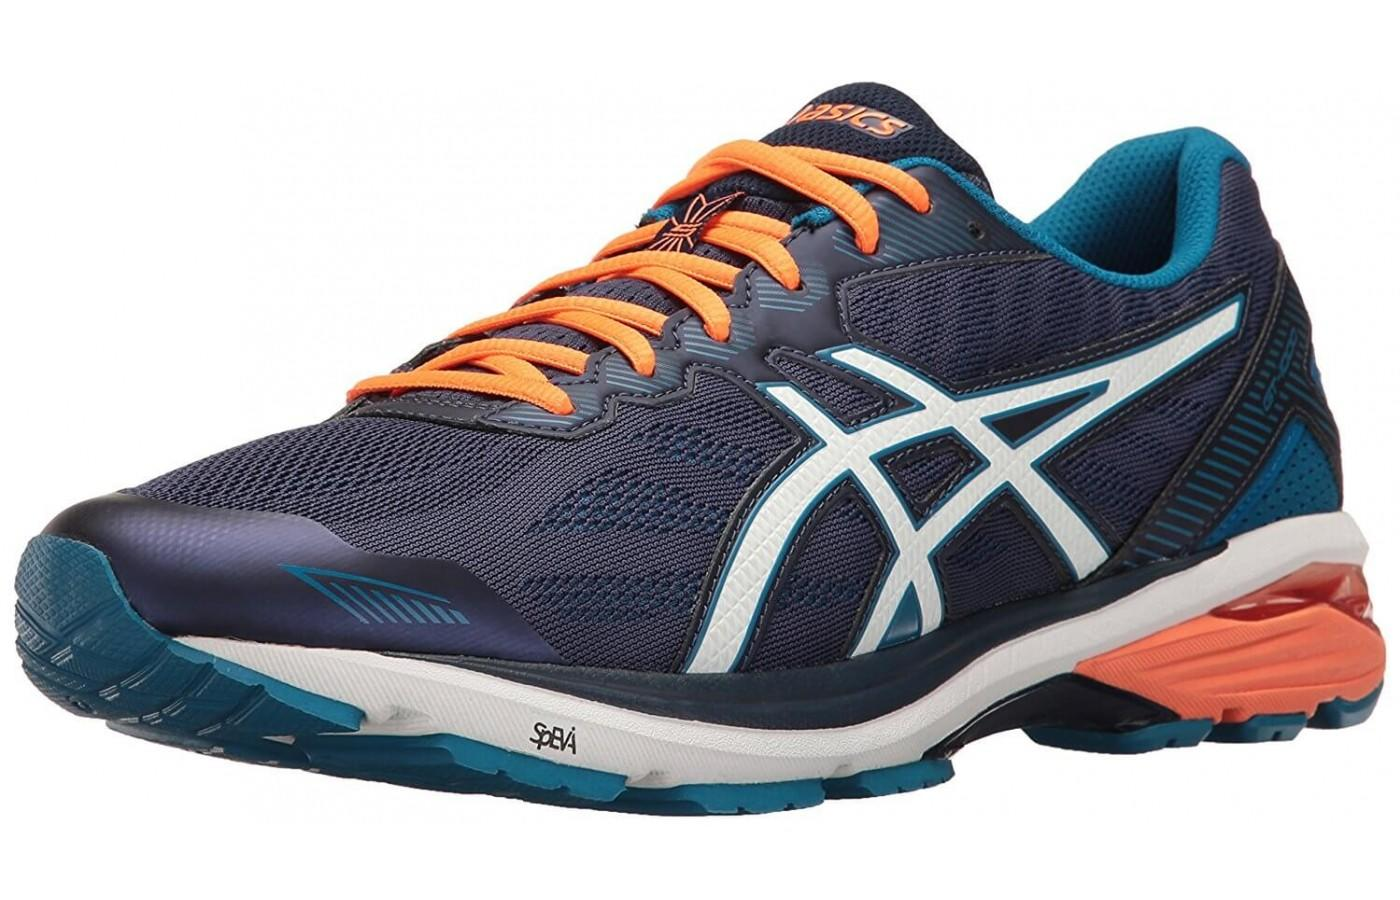 asics shoes 33 millimeters to cms energy 680344